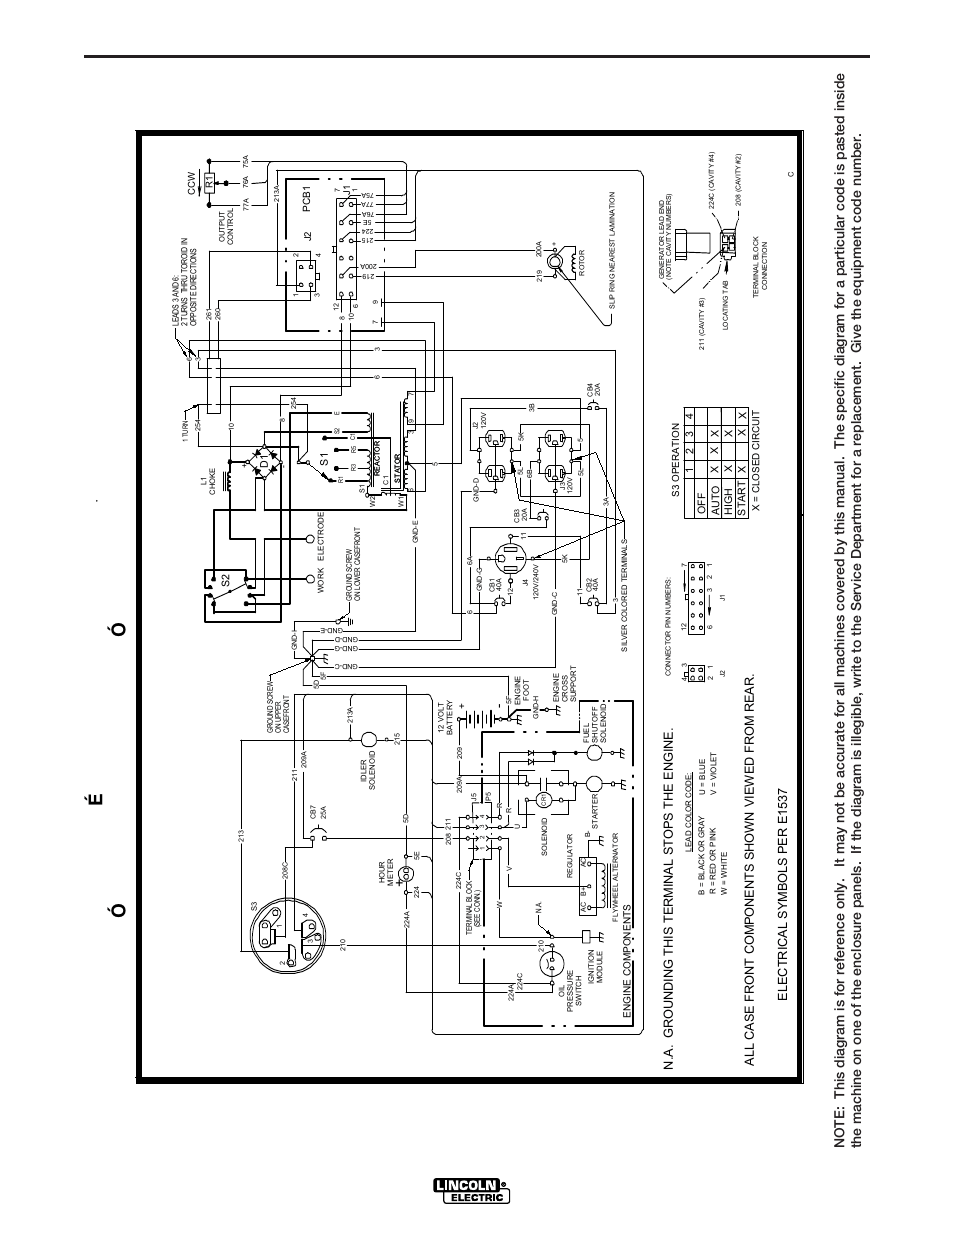 1989 Mazda 626 Parts Diagram Transmission